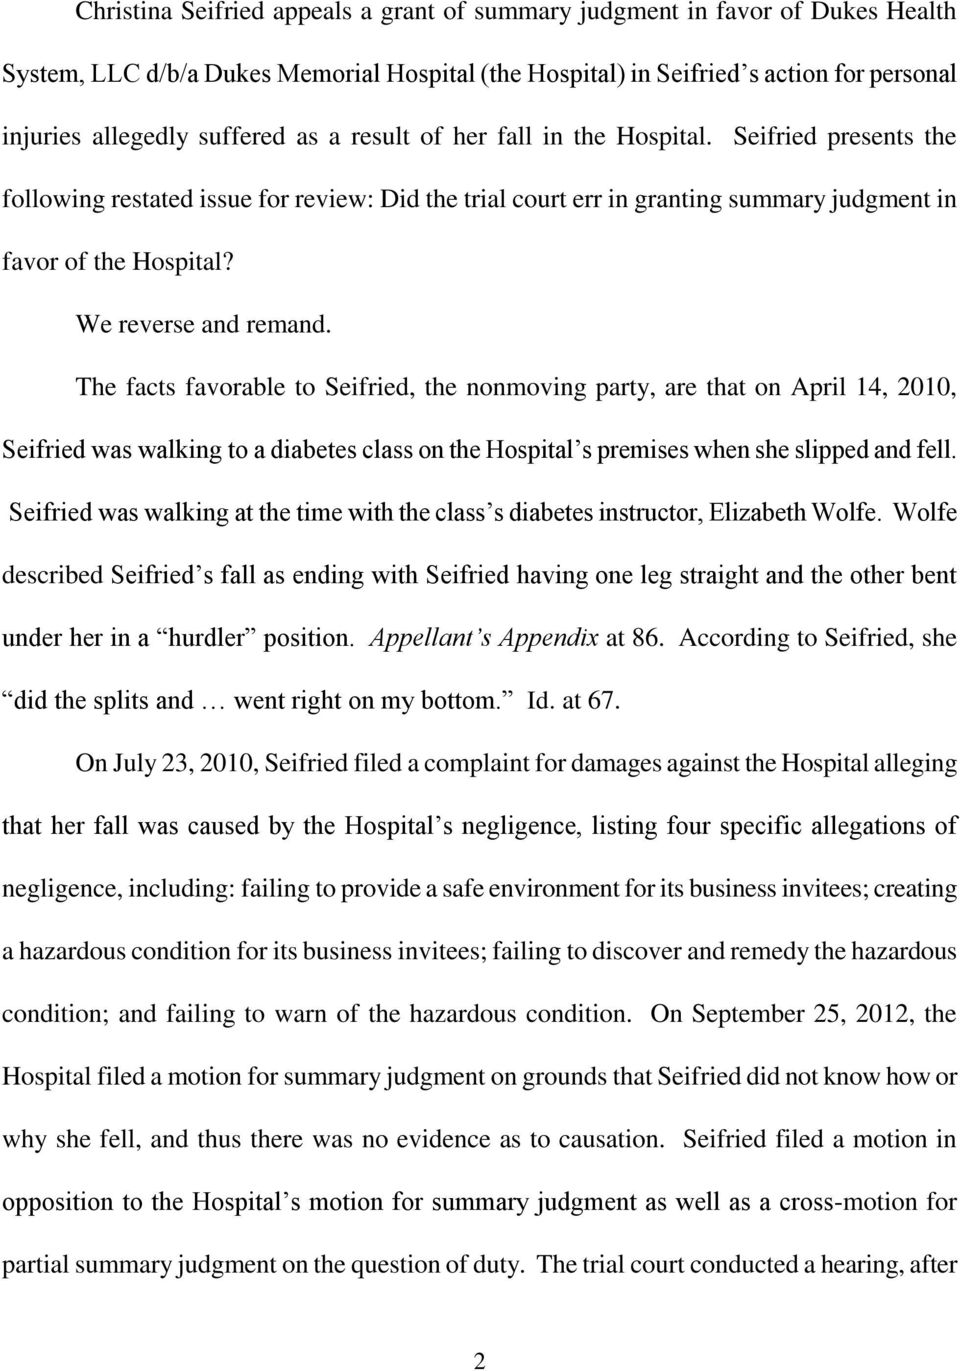 We reverse and remand. The facts favorable to Seifried, the nonmoving party, are that on April 14, 2010, Seifried was walking to a diabetes class on the Hospital s premises when she slipped and fell.